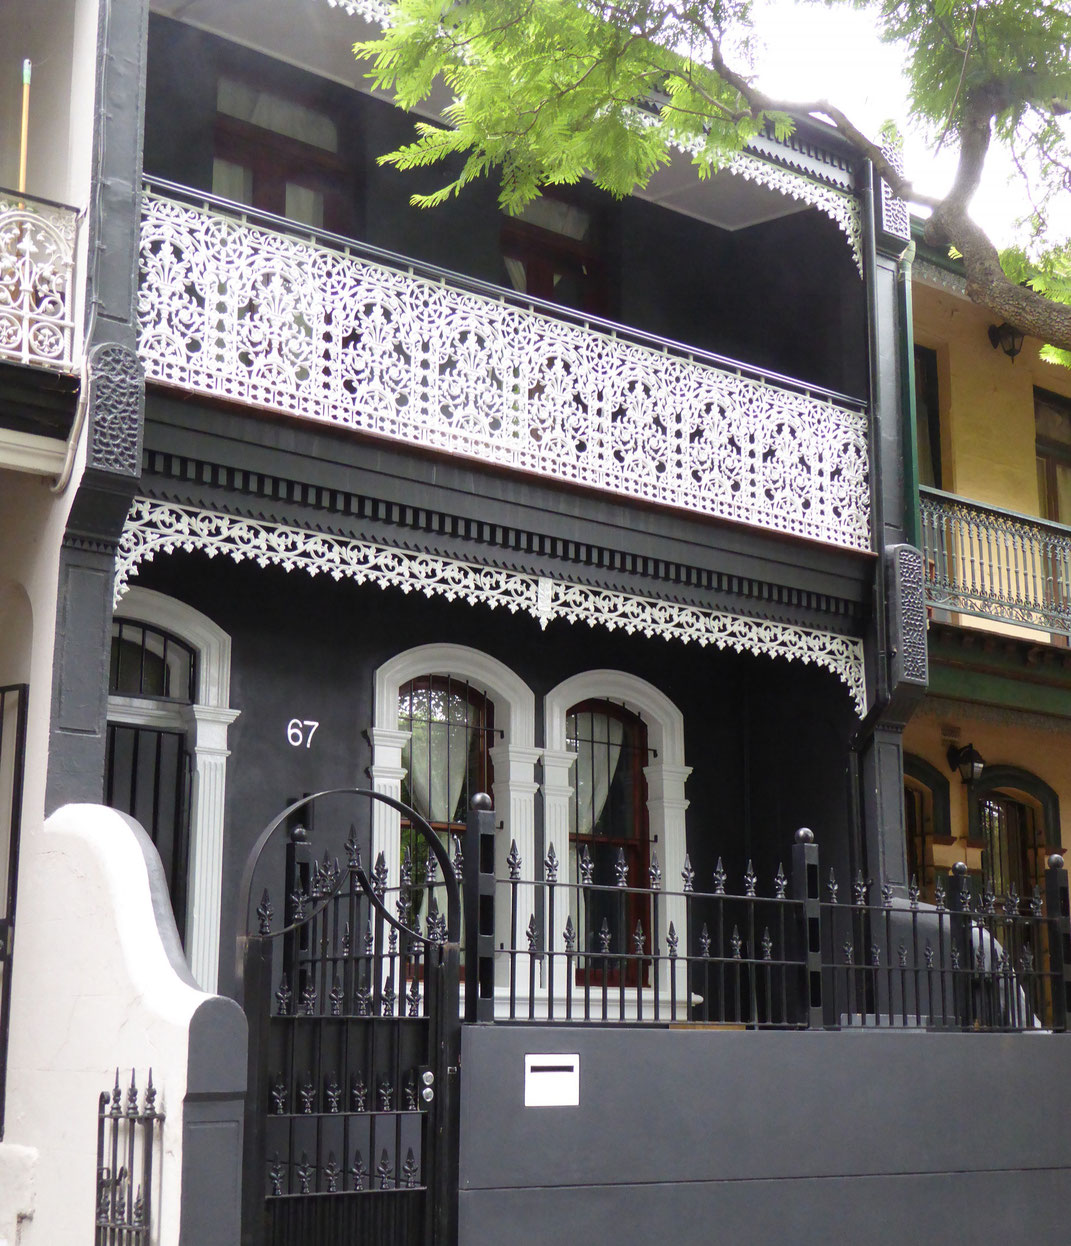 Haus in Redfern, Sydney